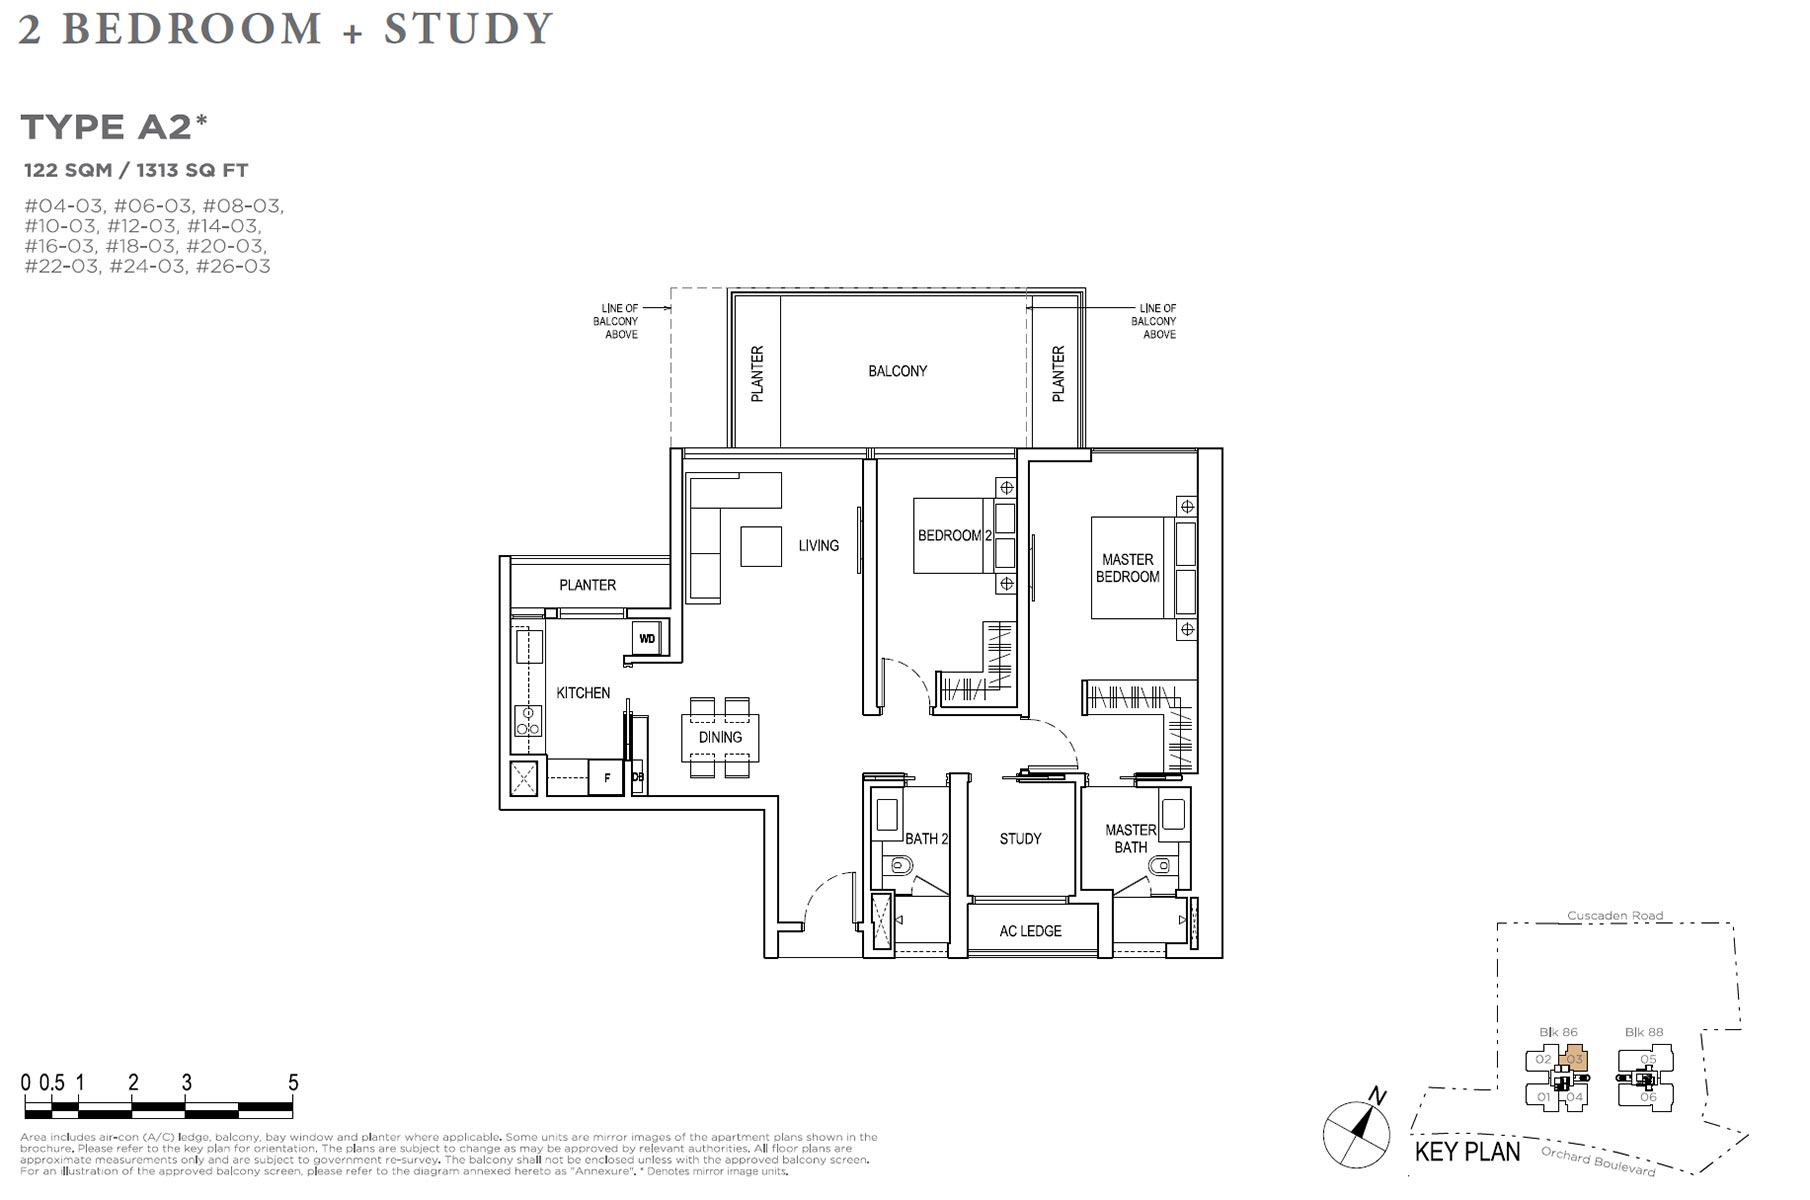 Boulevard 88 2 Bedroom + Study - Type A2